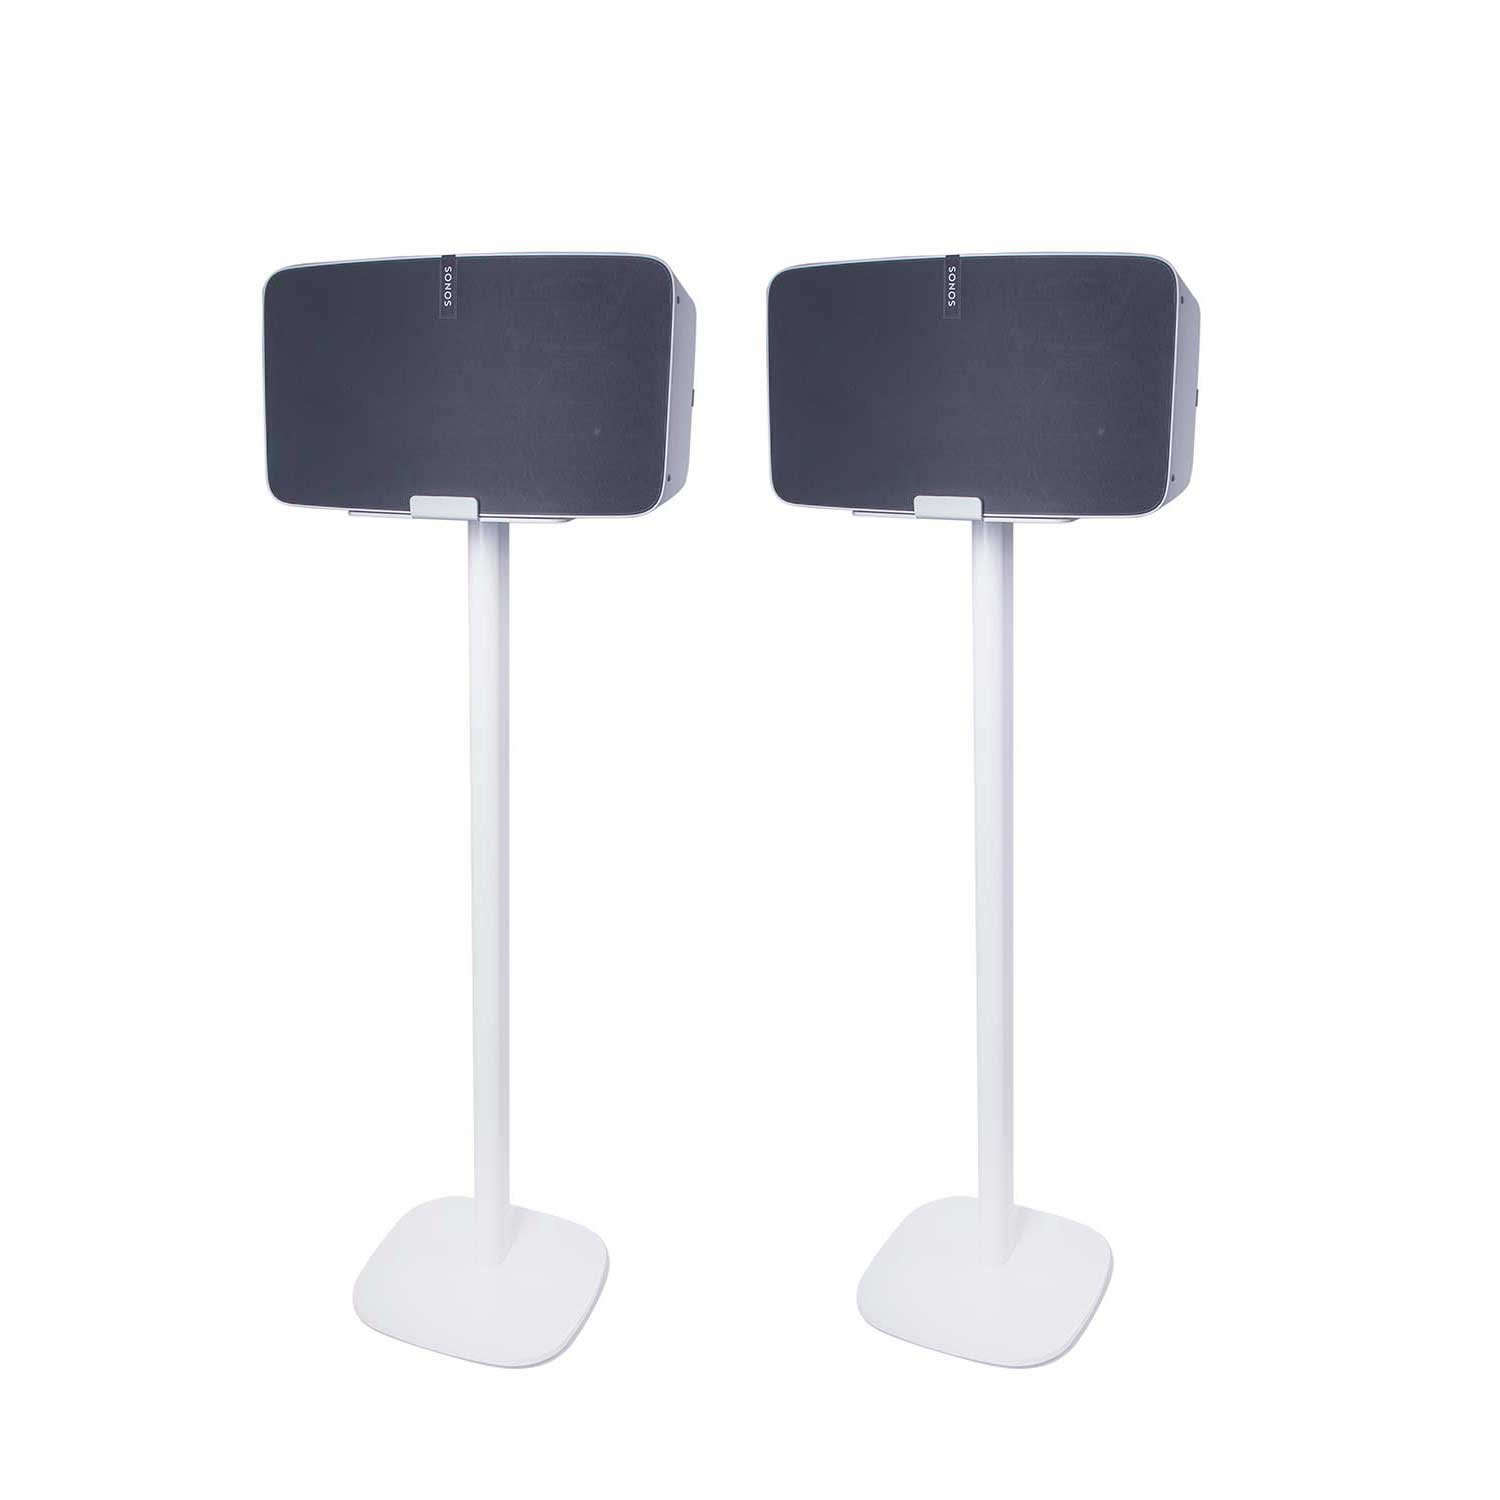 Vebos floor stand Sonos Play 5 gen 2 white set en optimal experience in every room - Allows you to place your SONOS PLAY 5 exactly where you want it - Two years warranty by Vebos